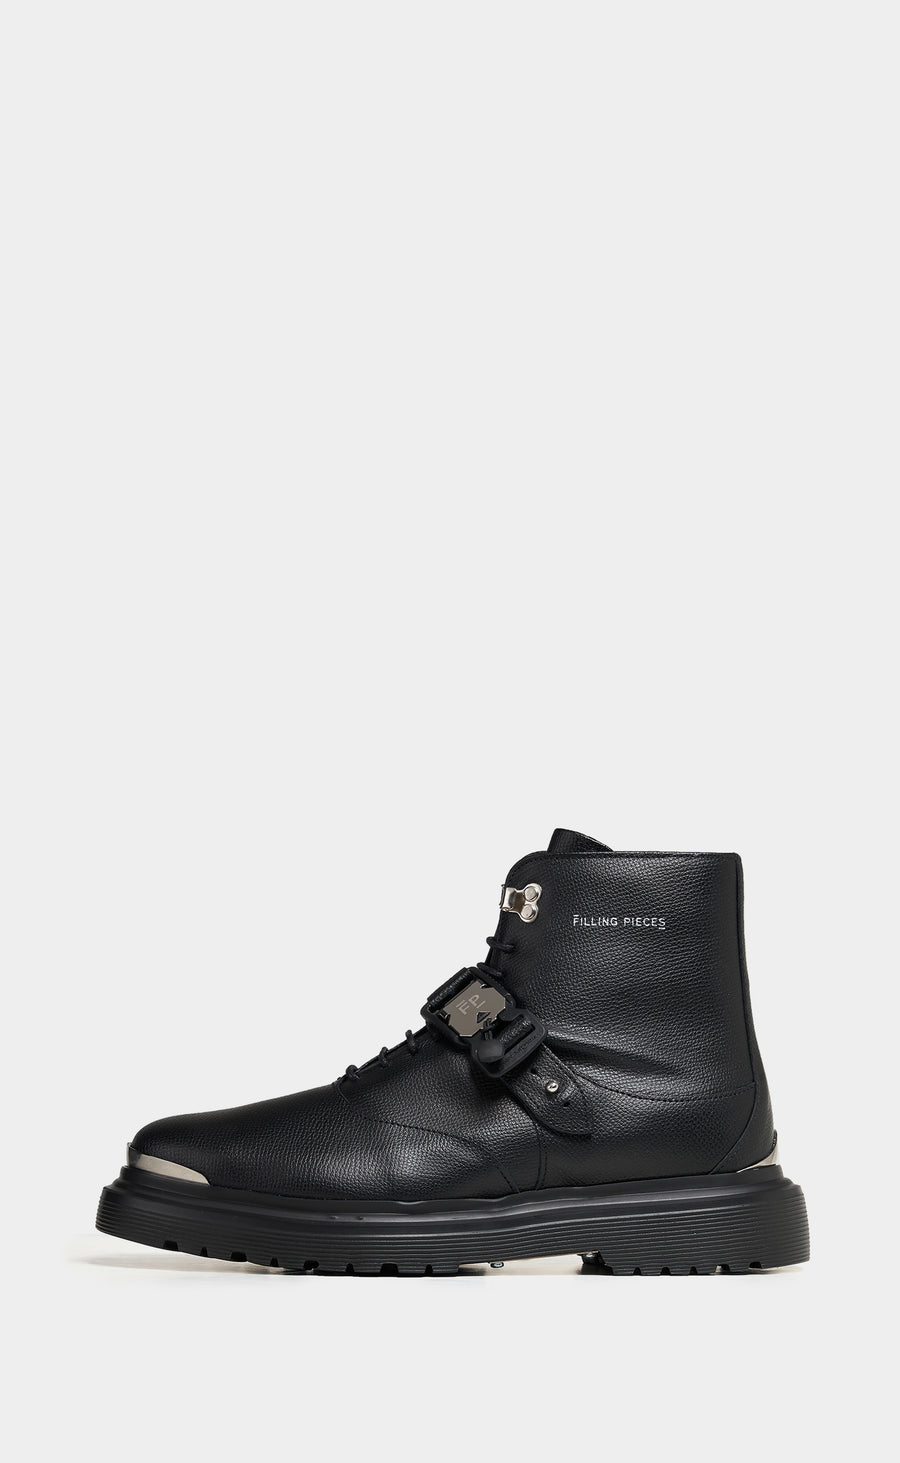 Waspy Dress Up Boot Black - men